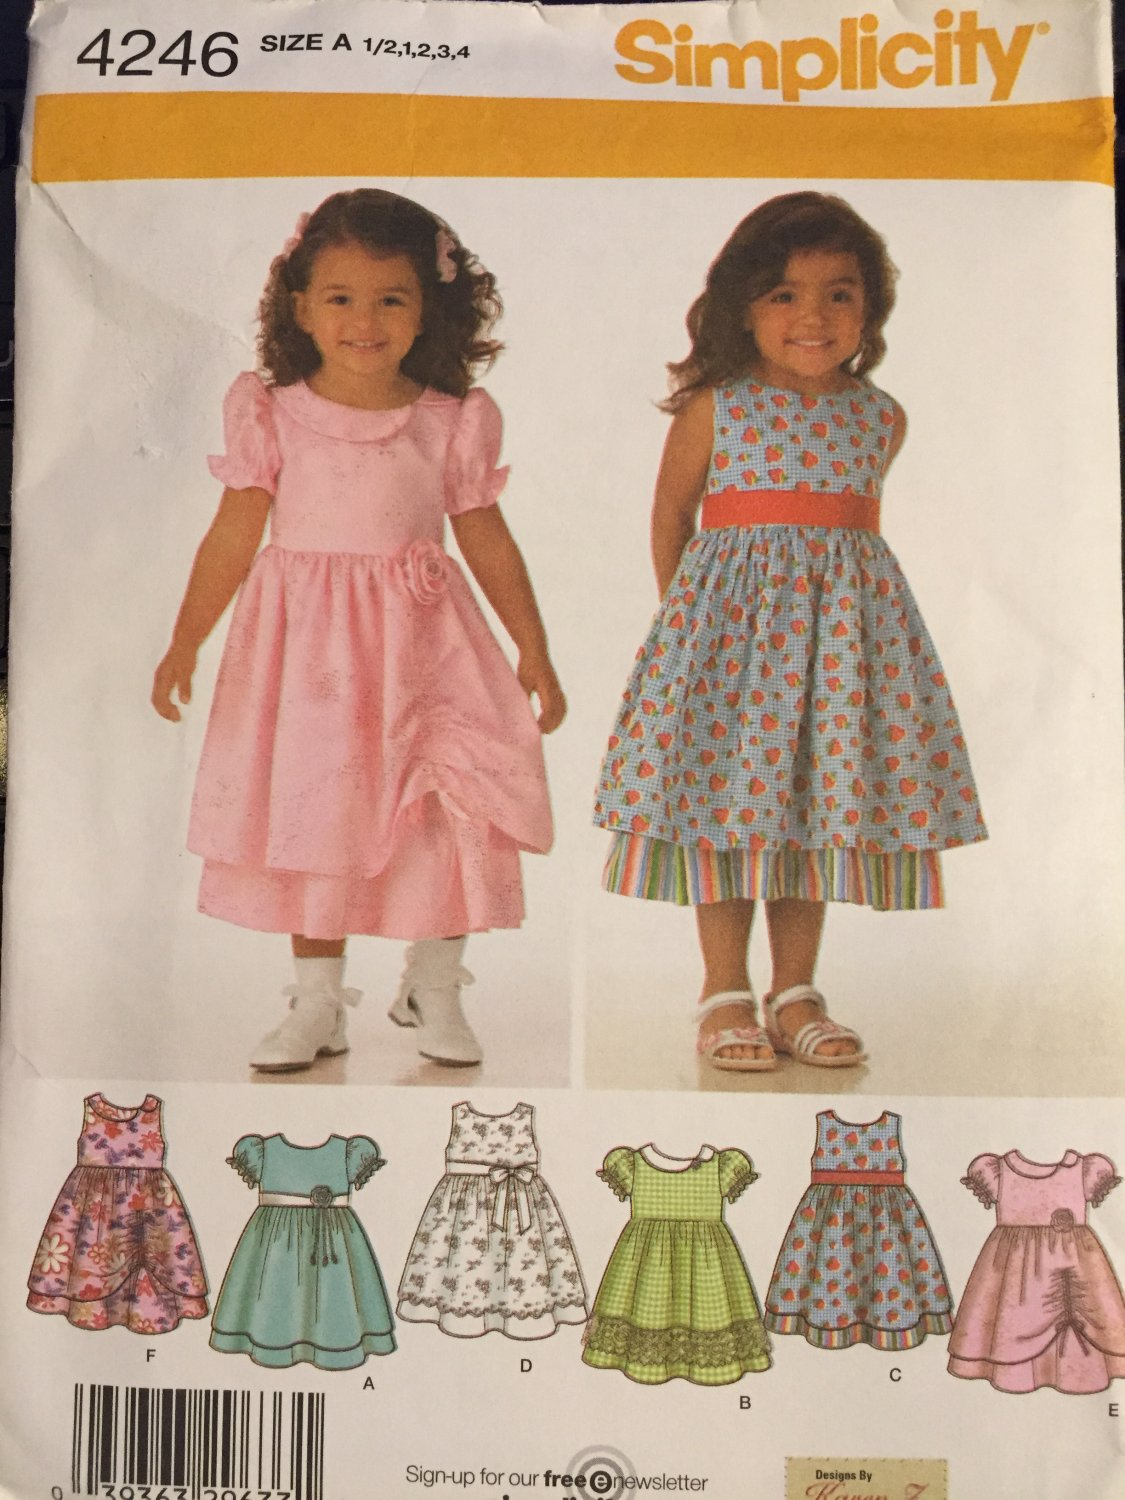 Simplicity 4246 Toddler's Dress with Skirt Sewing Pattern, Trim Variations Sizes 1/2, 1, 2, 3, 4